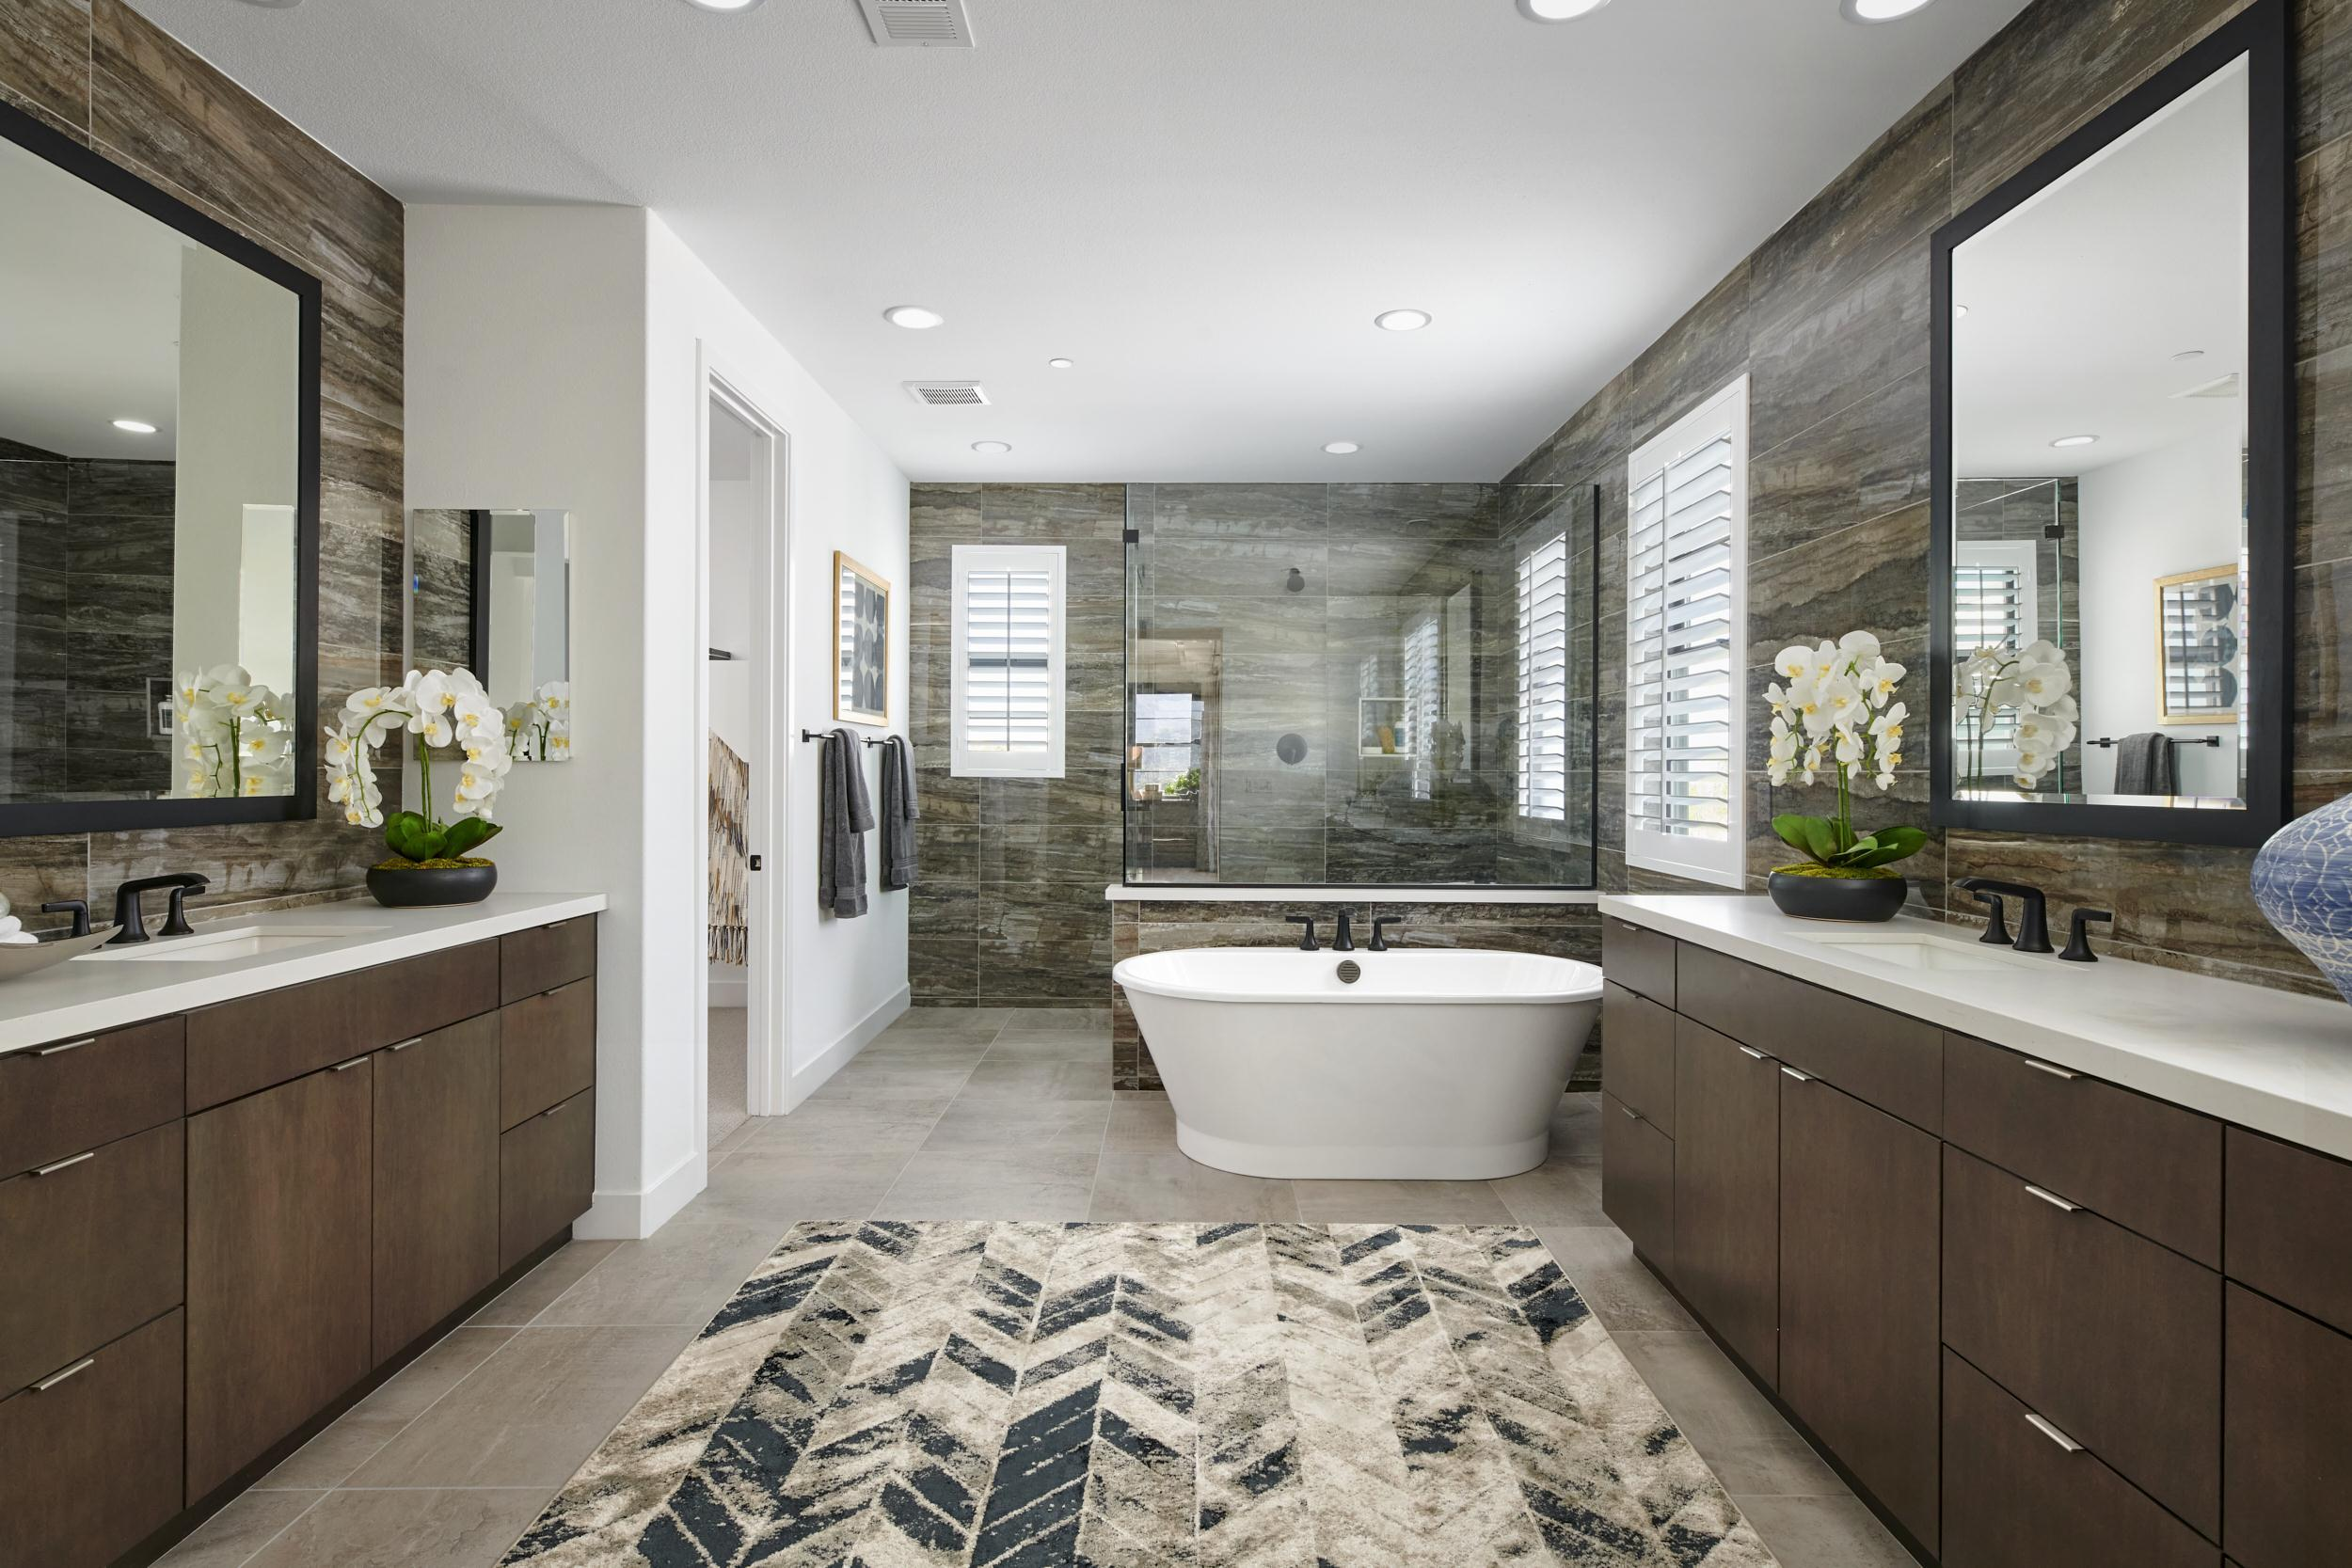 Bathroom featured in the Residence 3 By Van Daele Homes in Los Angeles, CA